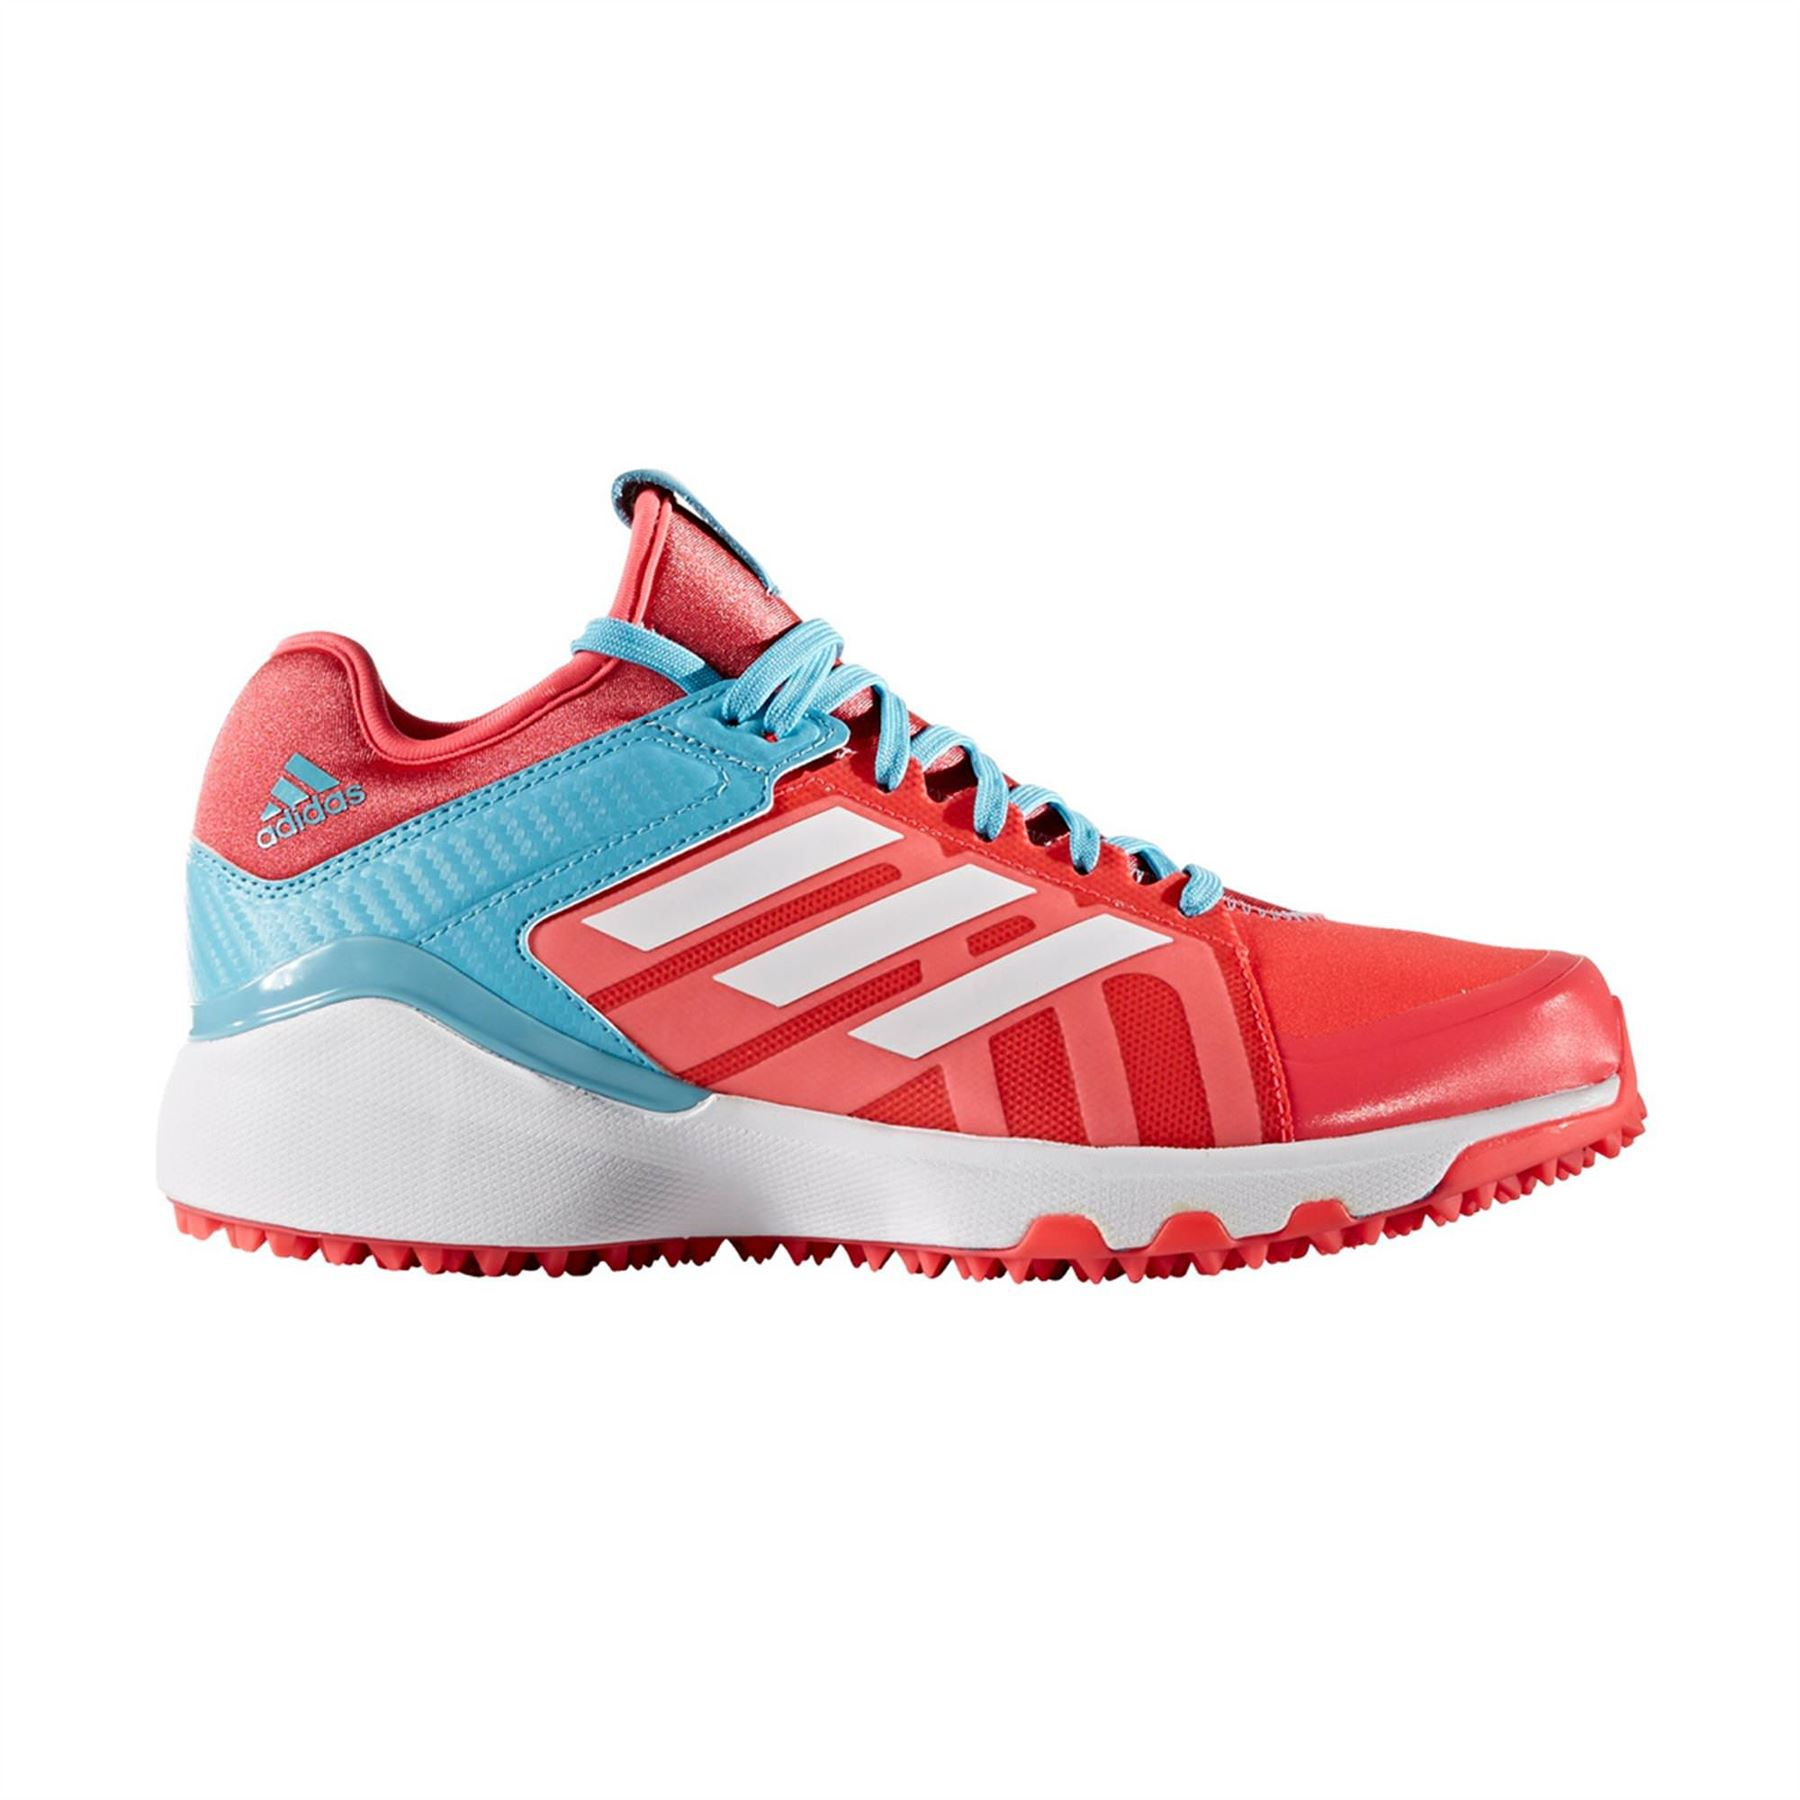 Shoes Field Hockey Shoes: Find adidas products online at